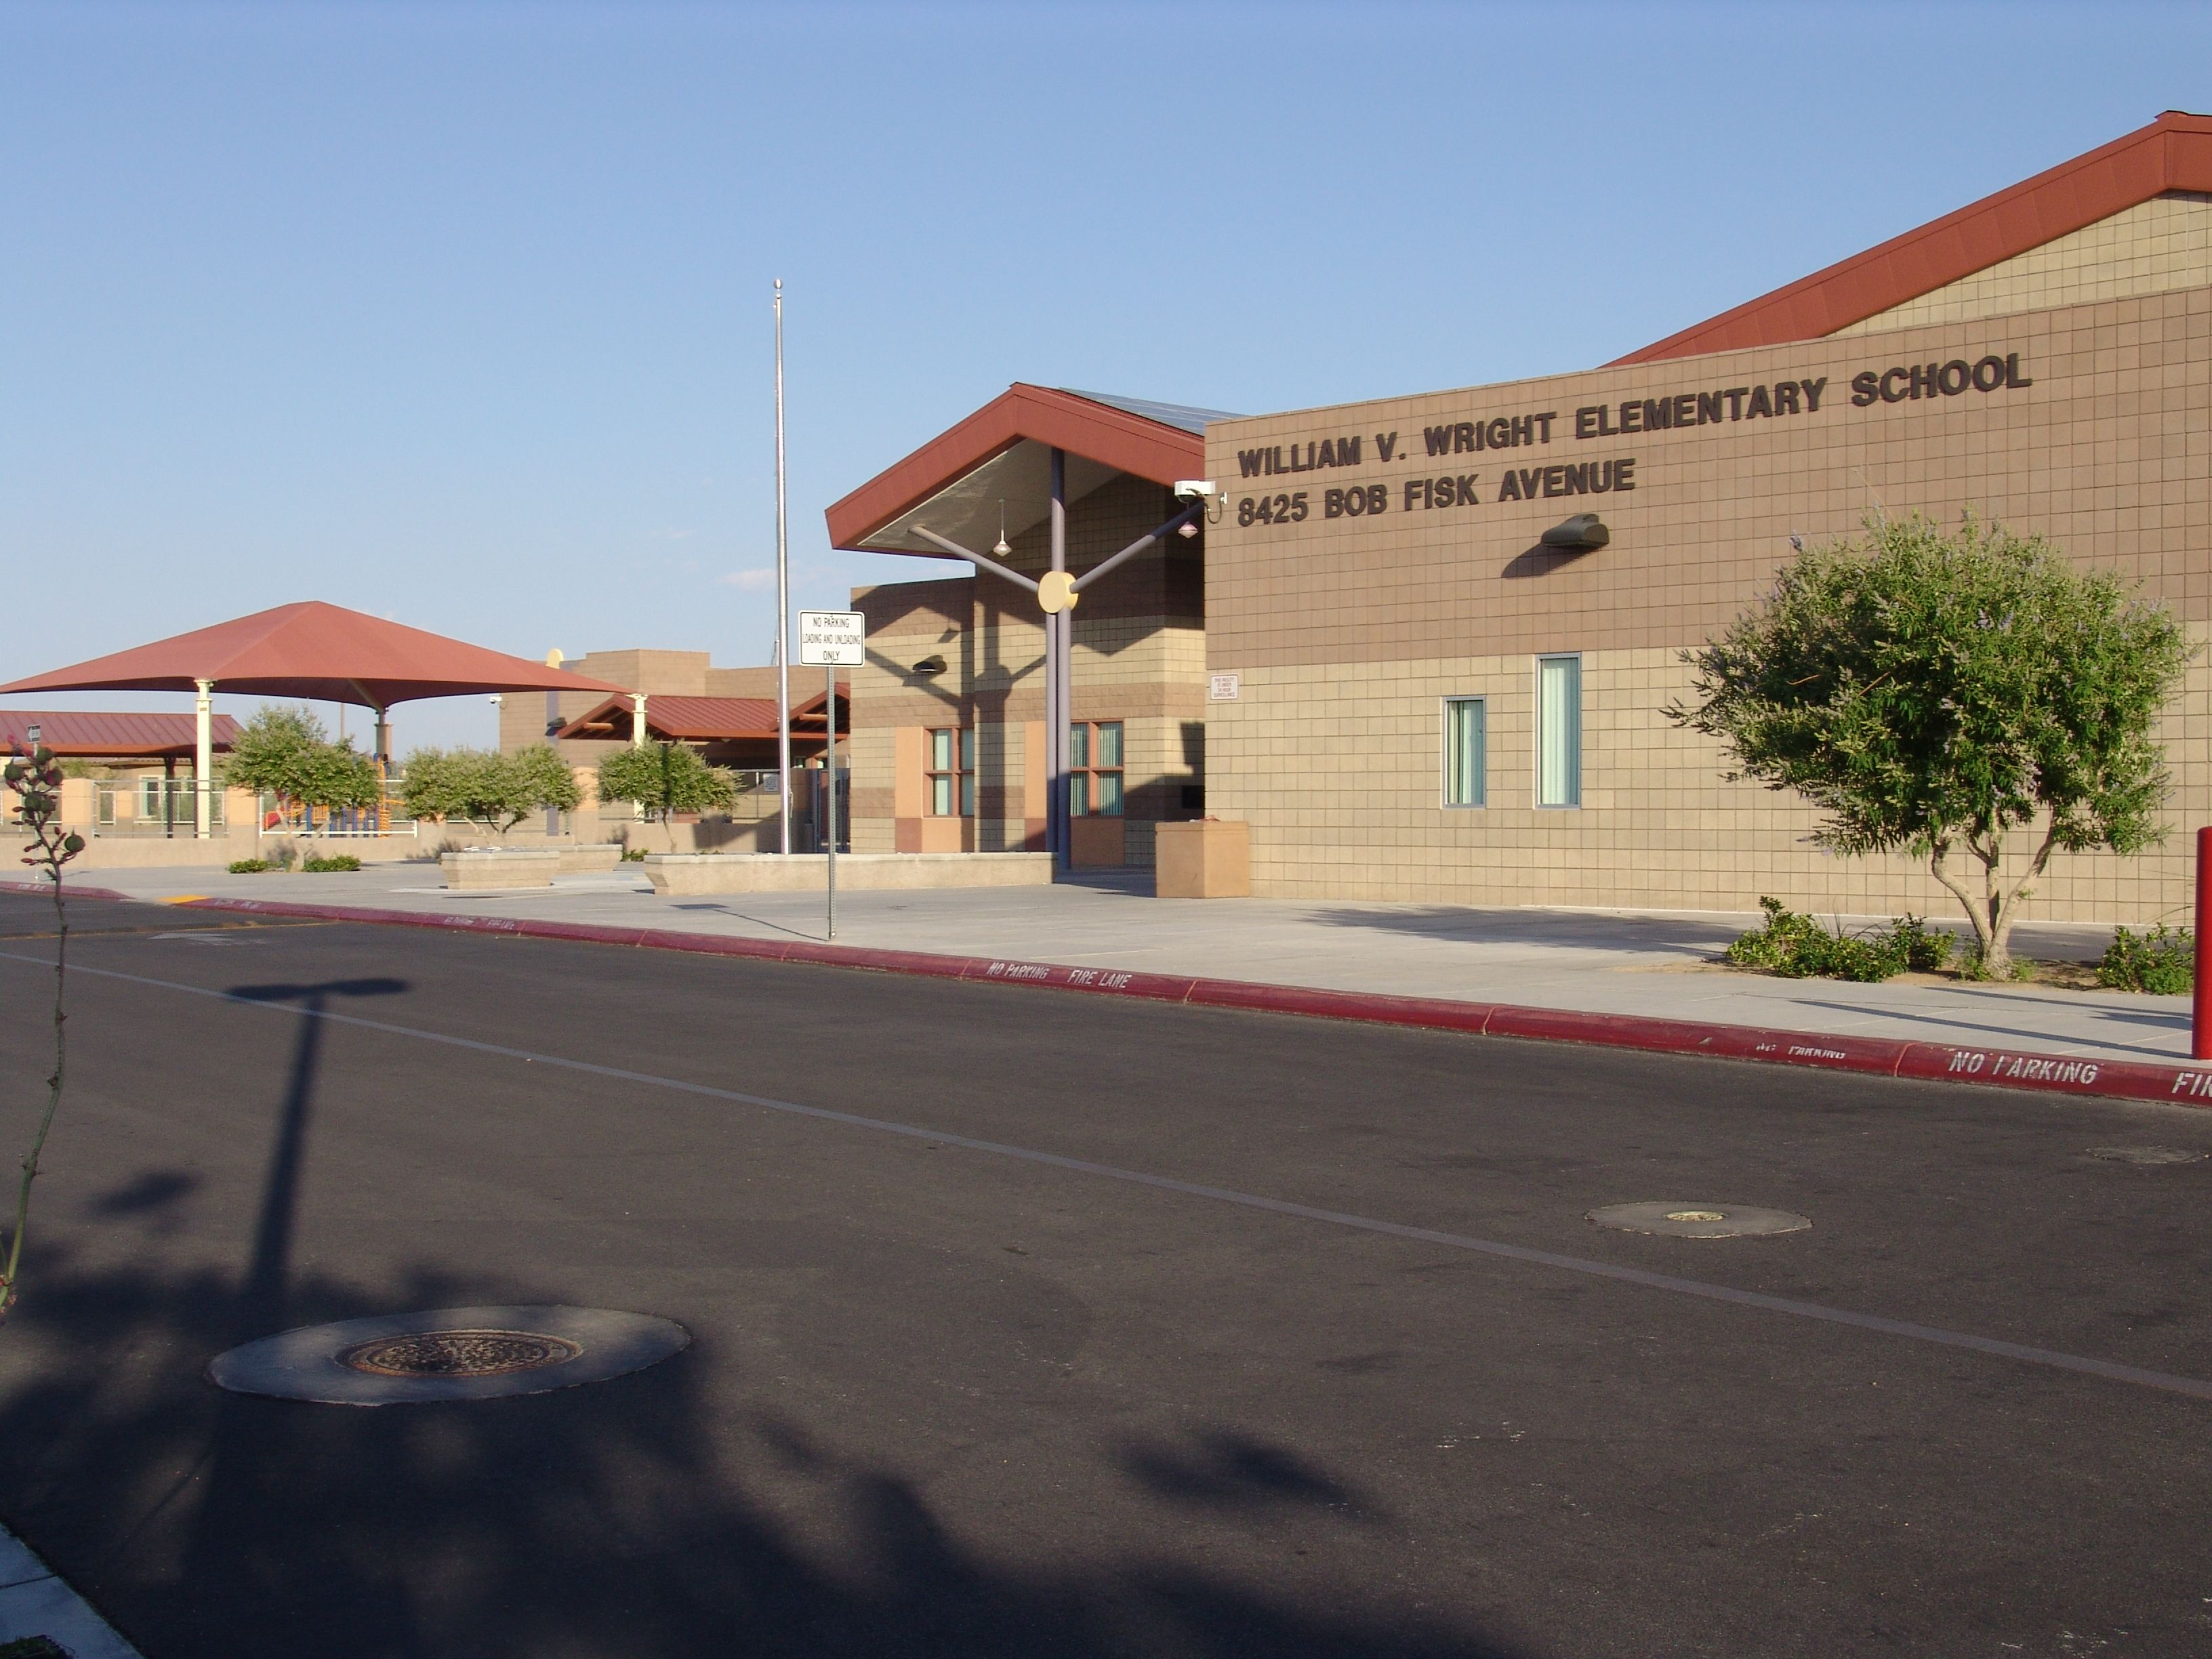 William V. Wright Elementary School at Mountain's Edge